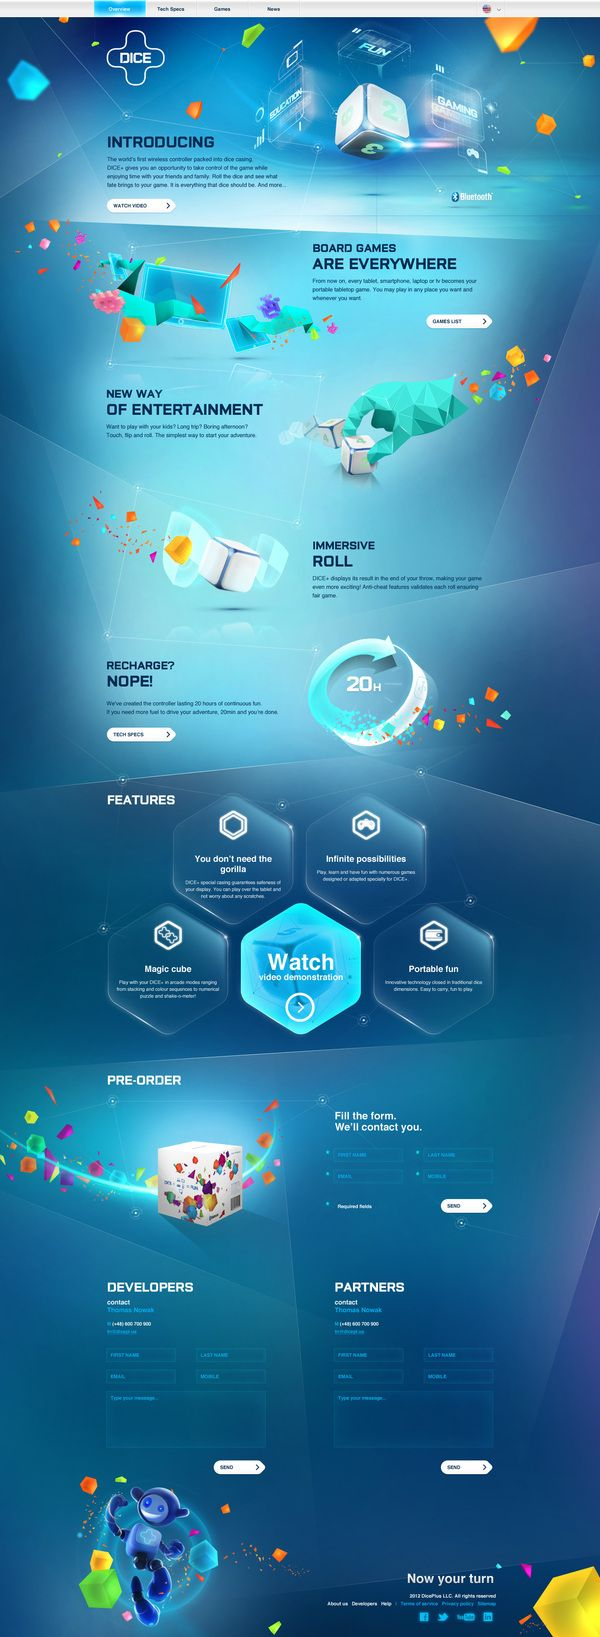 Website design layout. Inspirational UX/UI design samples. Visit us at: www.sodapopmedia.com WebDesign